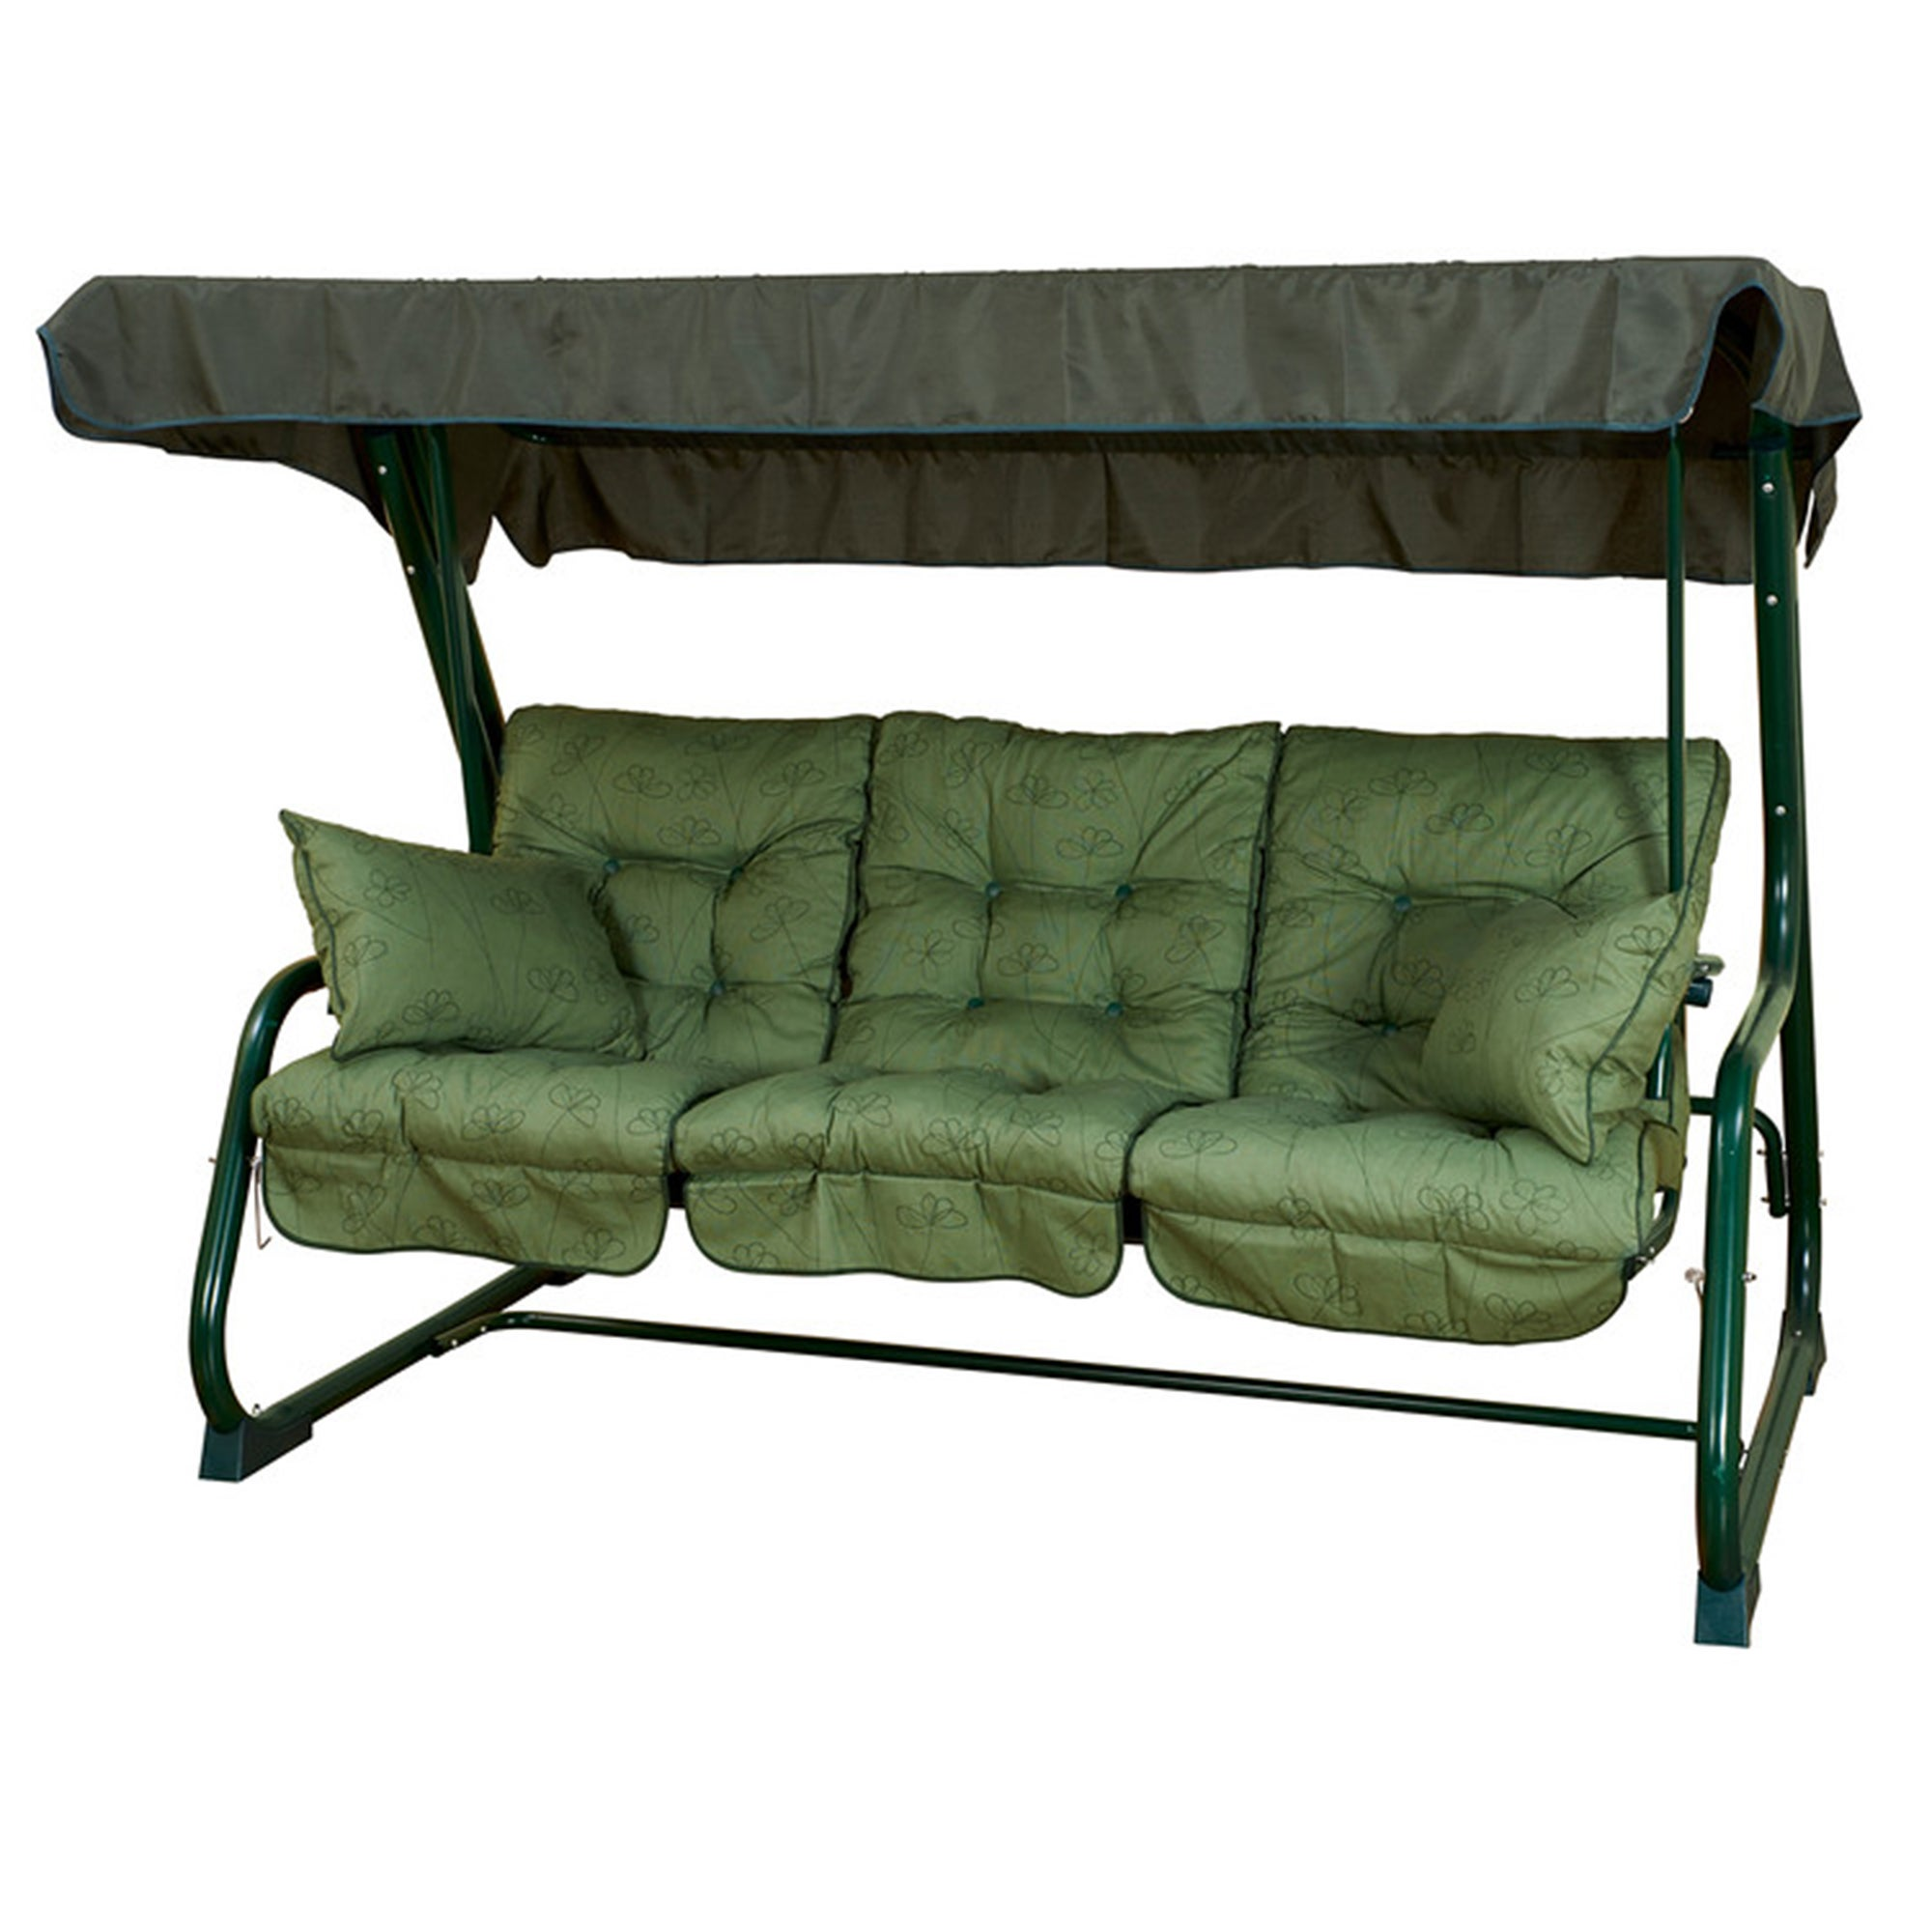 Glendale Pendulum Swinging Bed Hammock in Sage Green